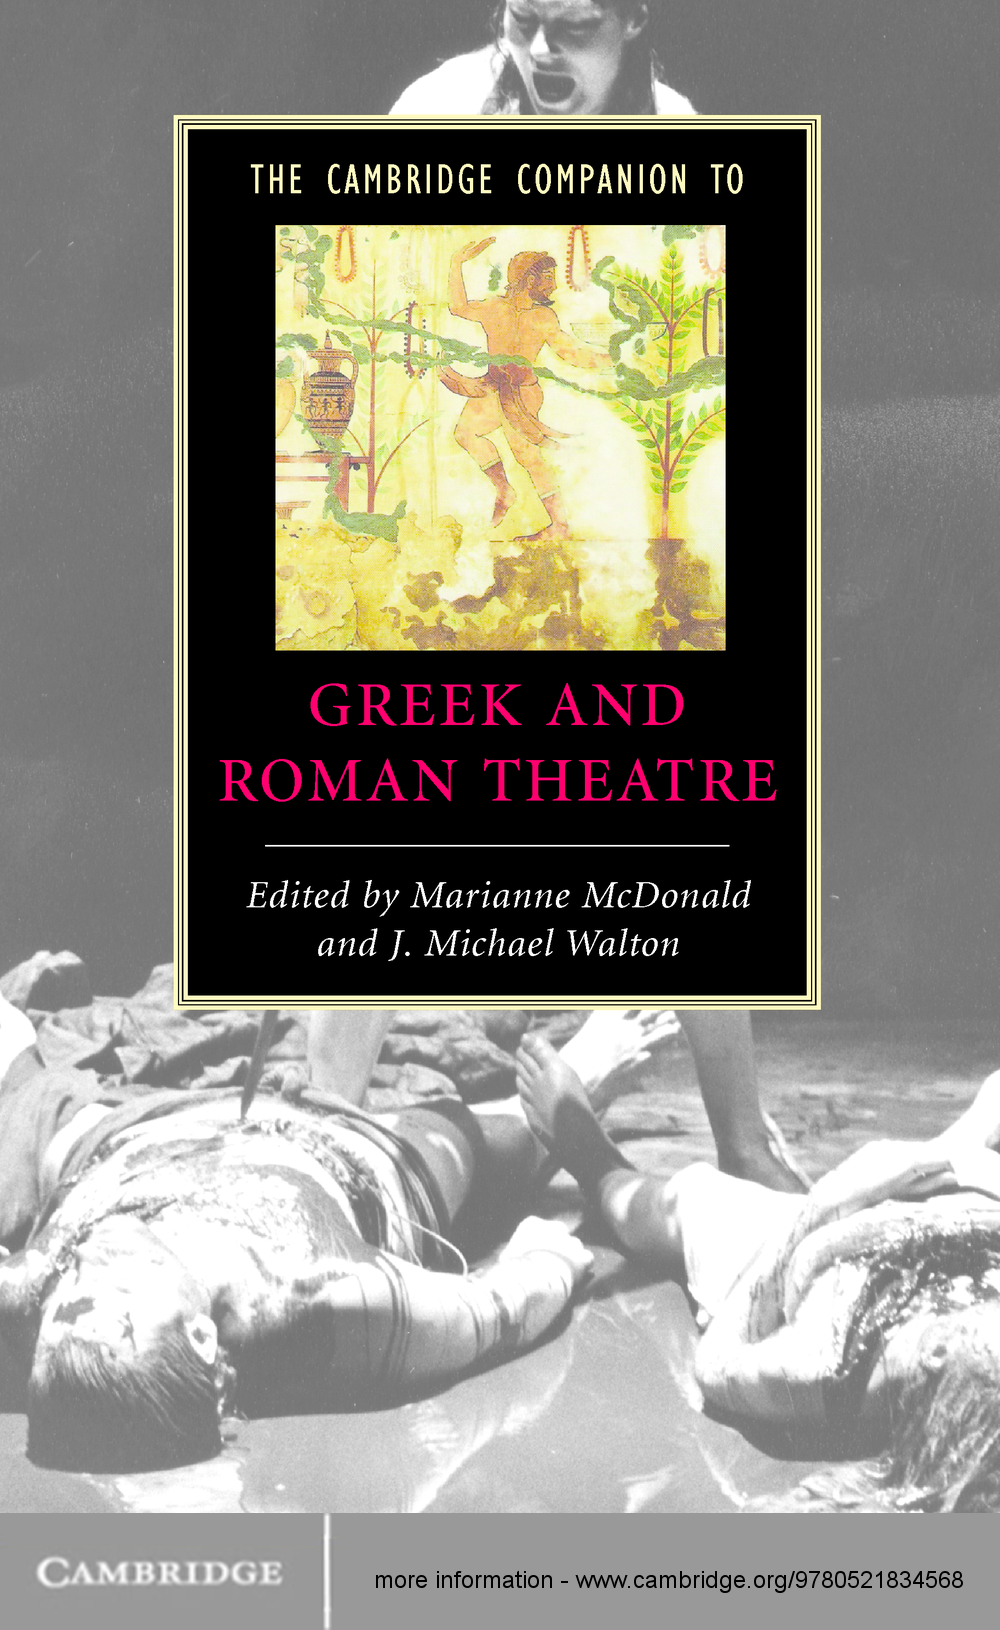 The Cambridge Companion to Greek and Roman Theatre